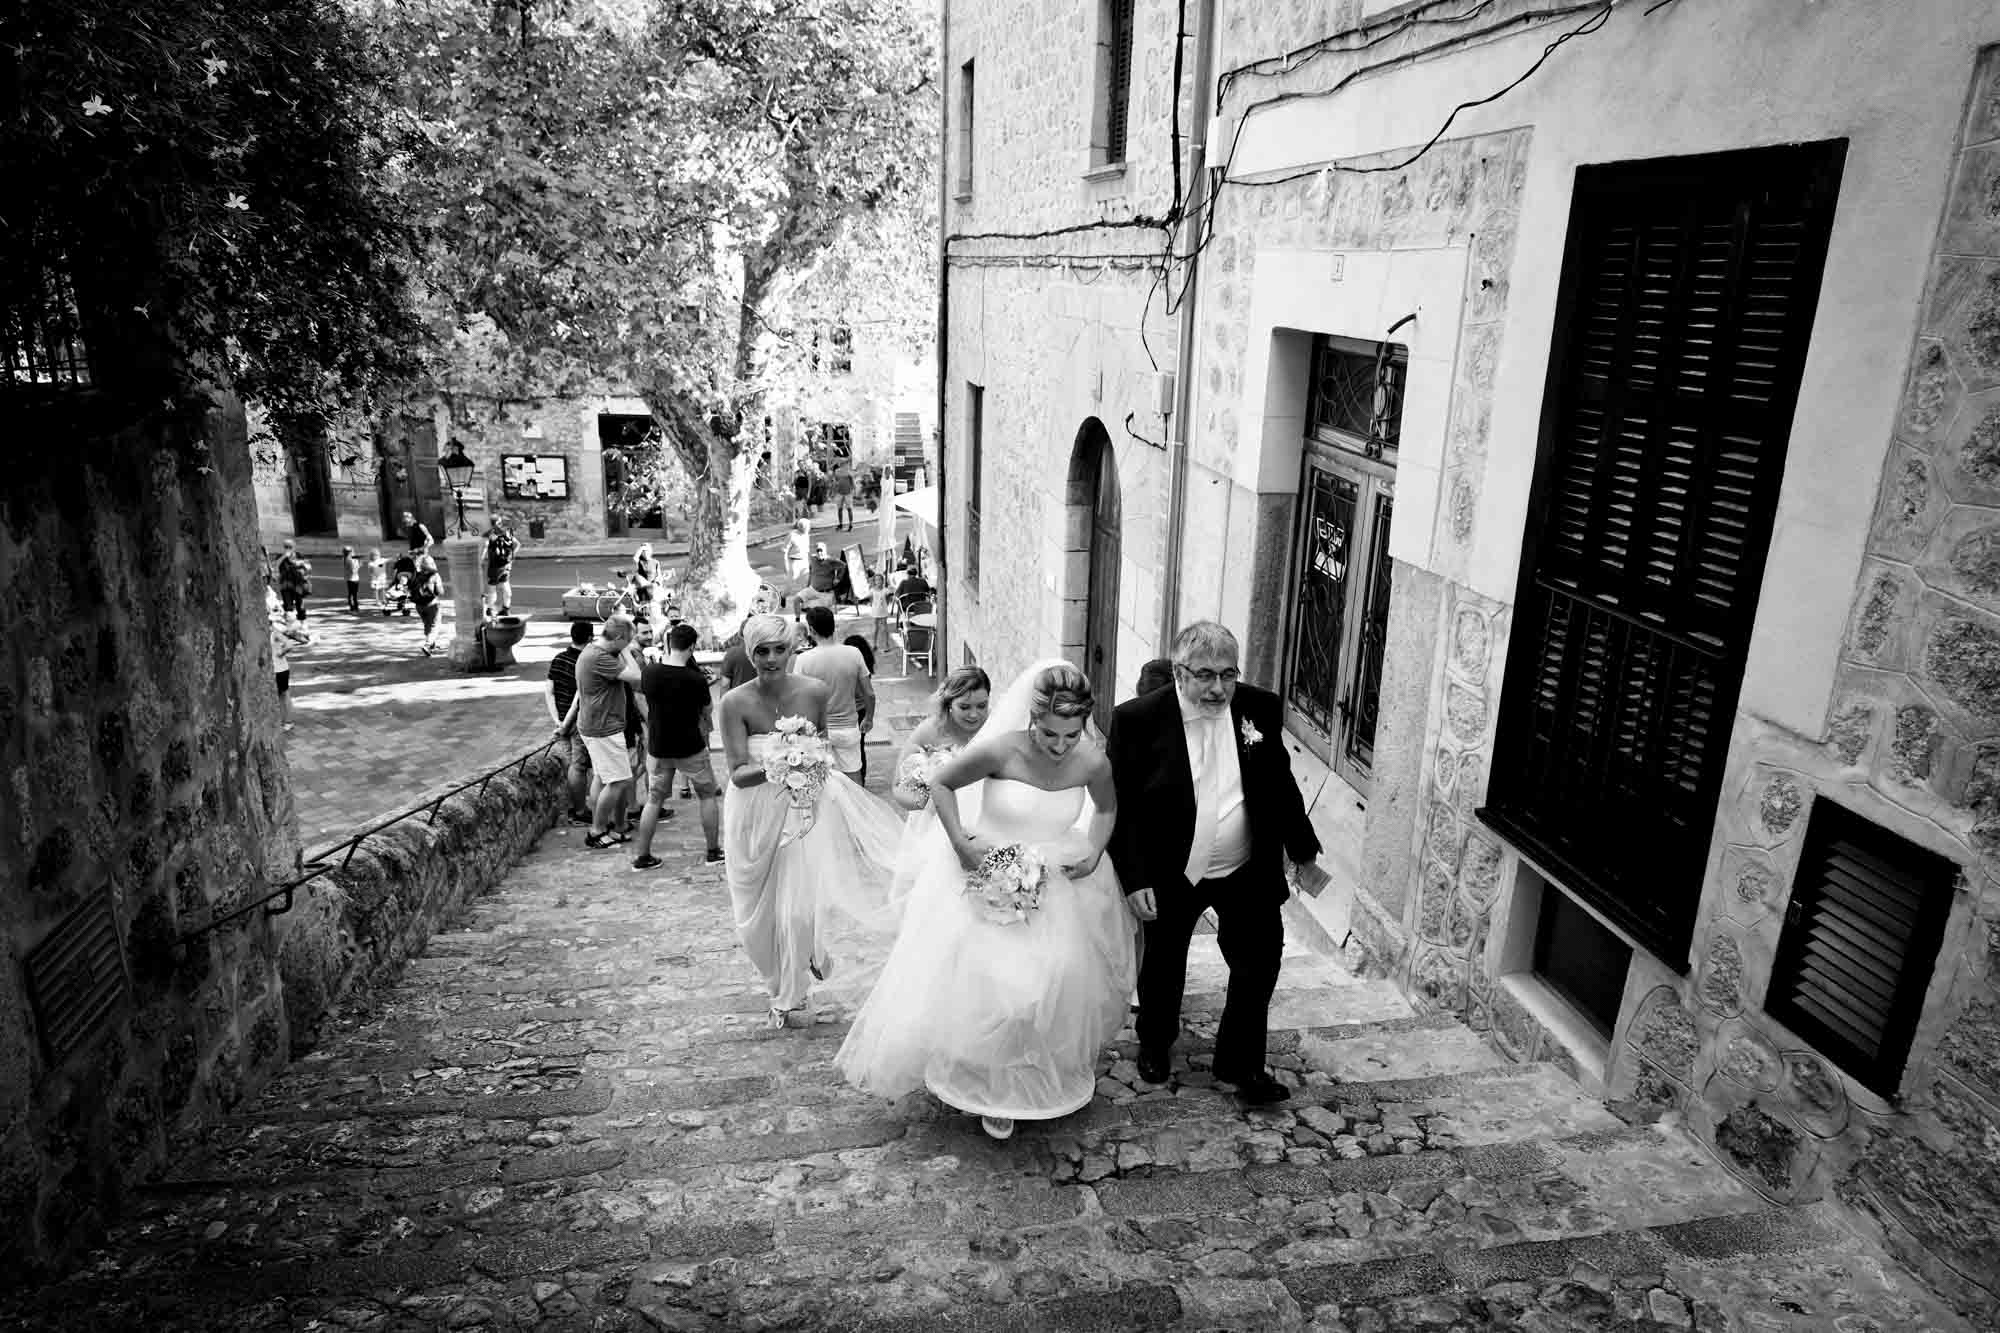 The bridal party walk up the steps to the church in Fornalutx